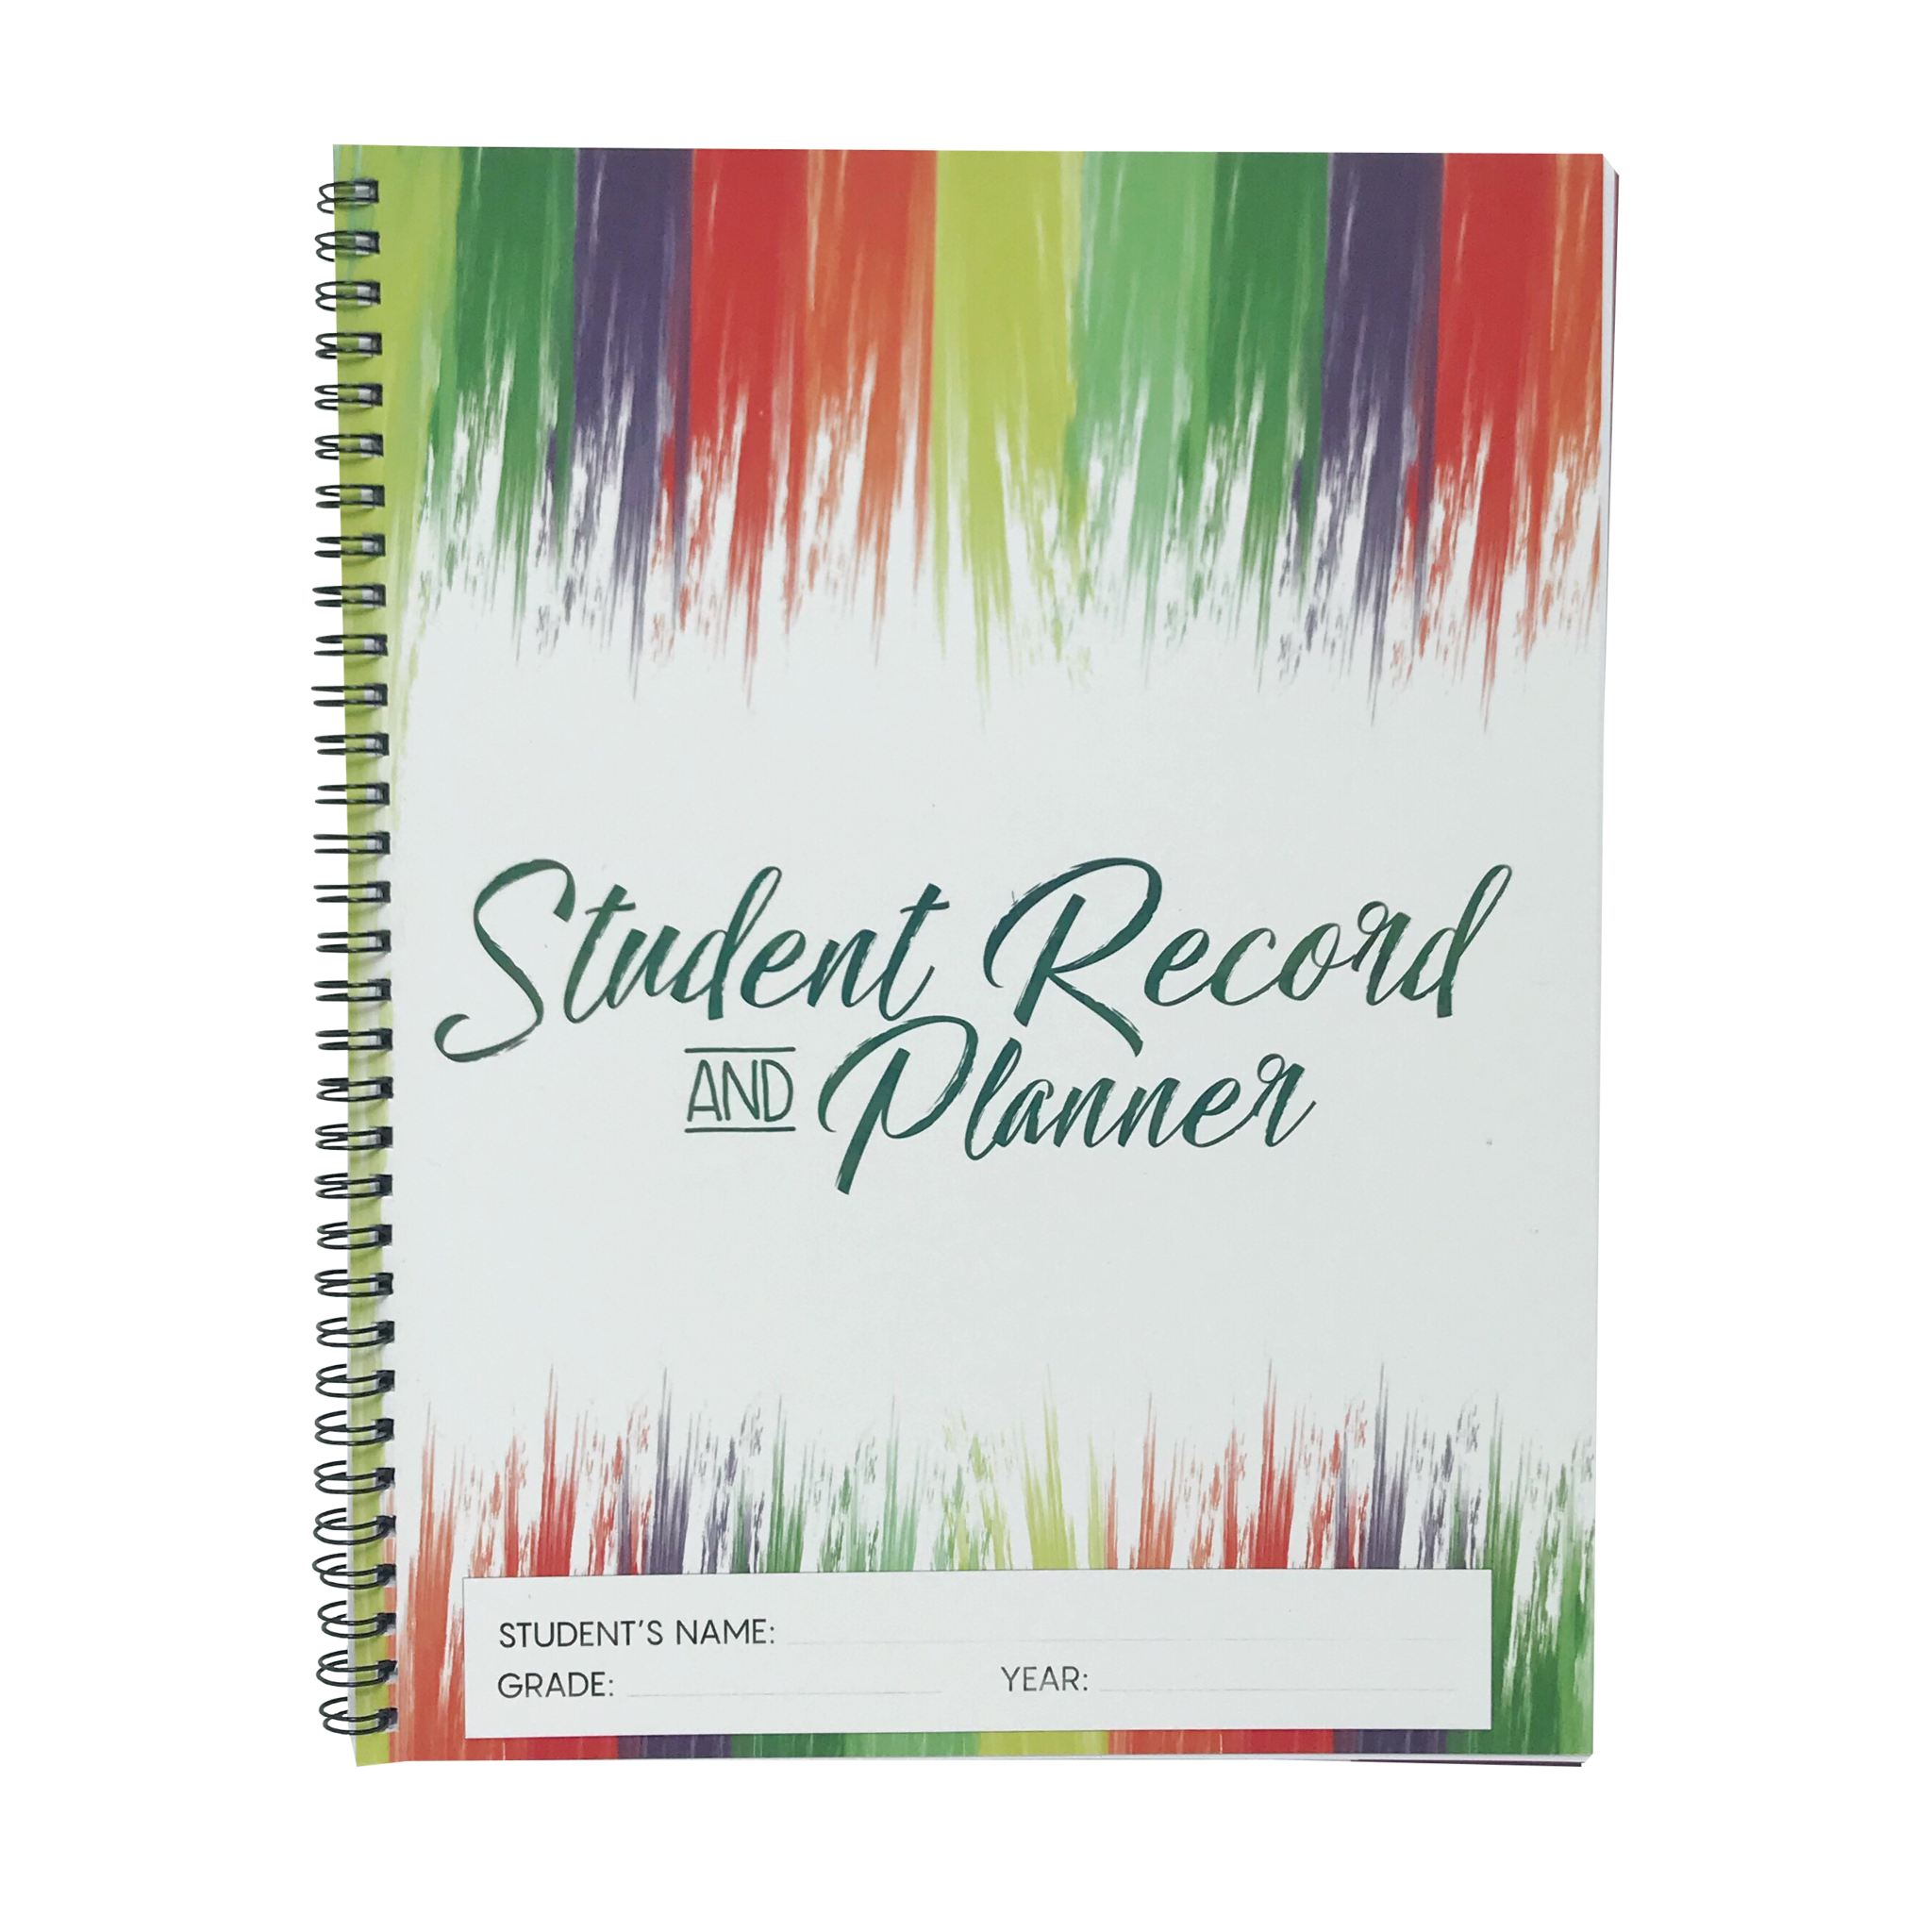 Student Record And Planner